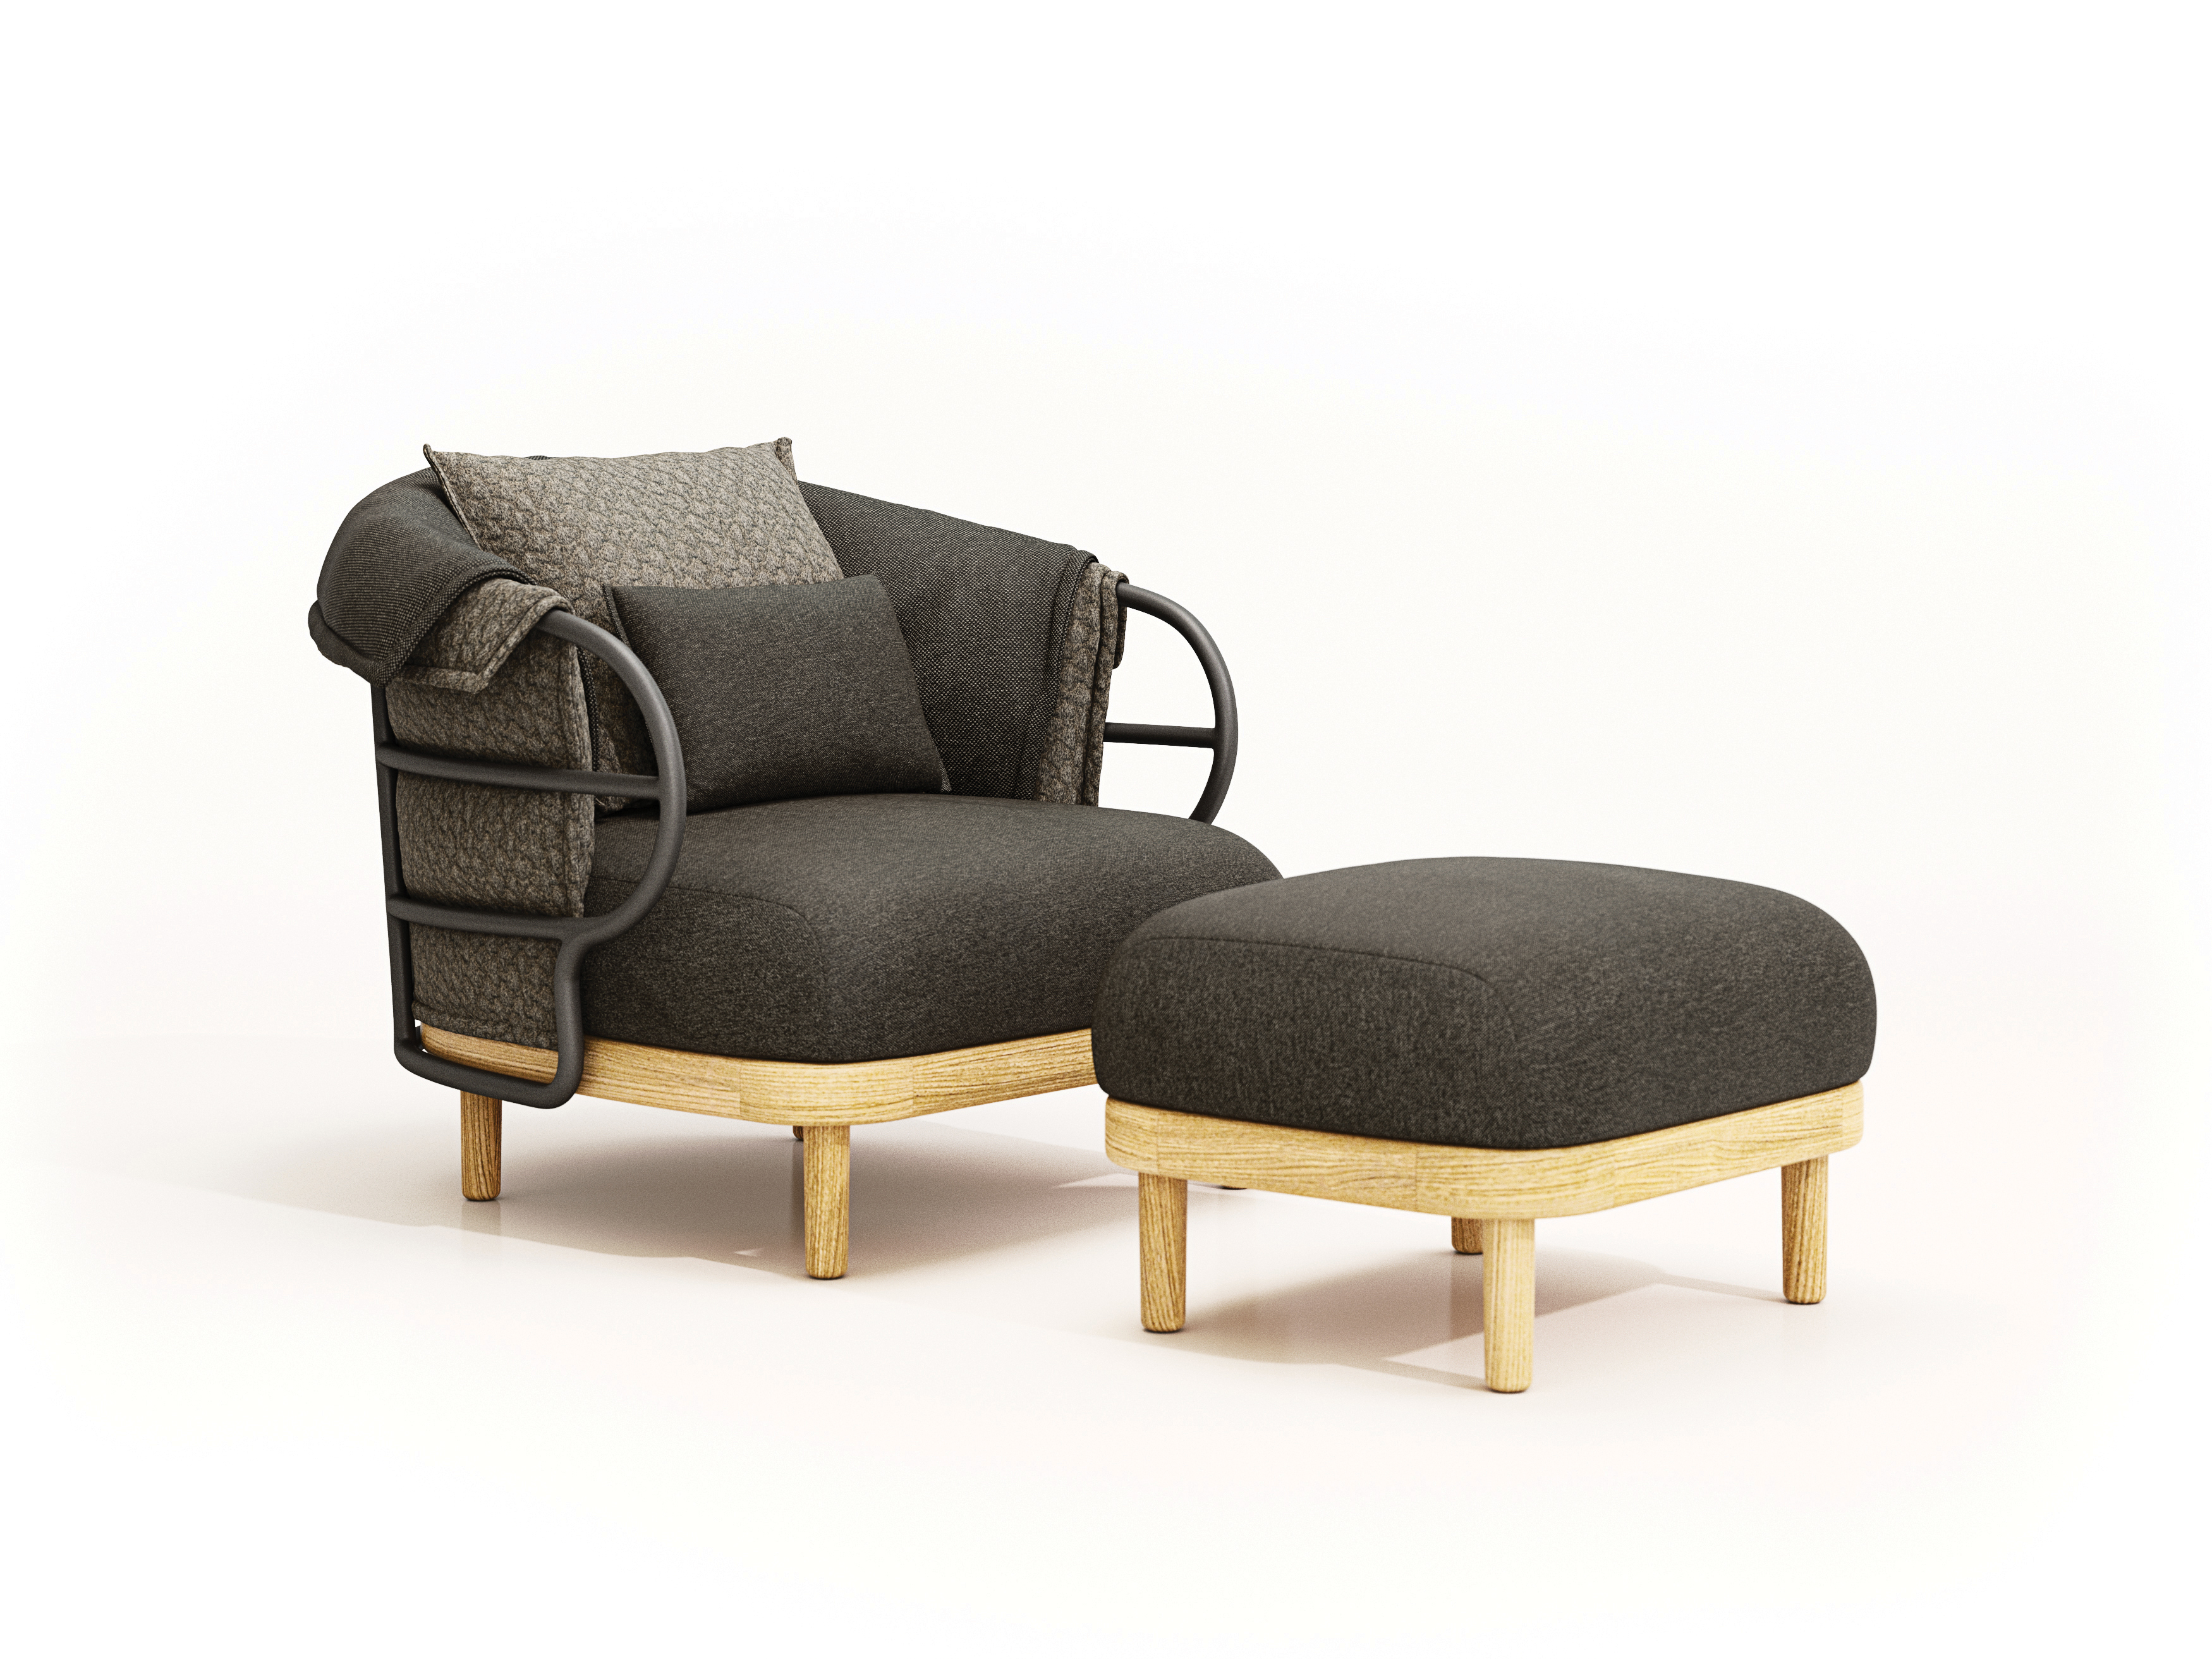 Dune lounge chair · dune lounge chair